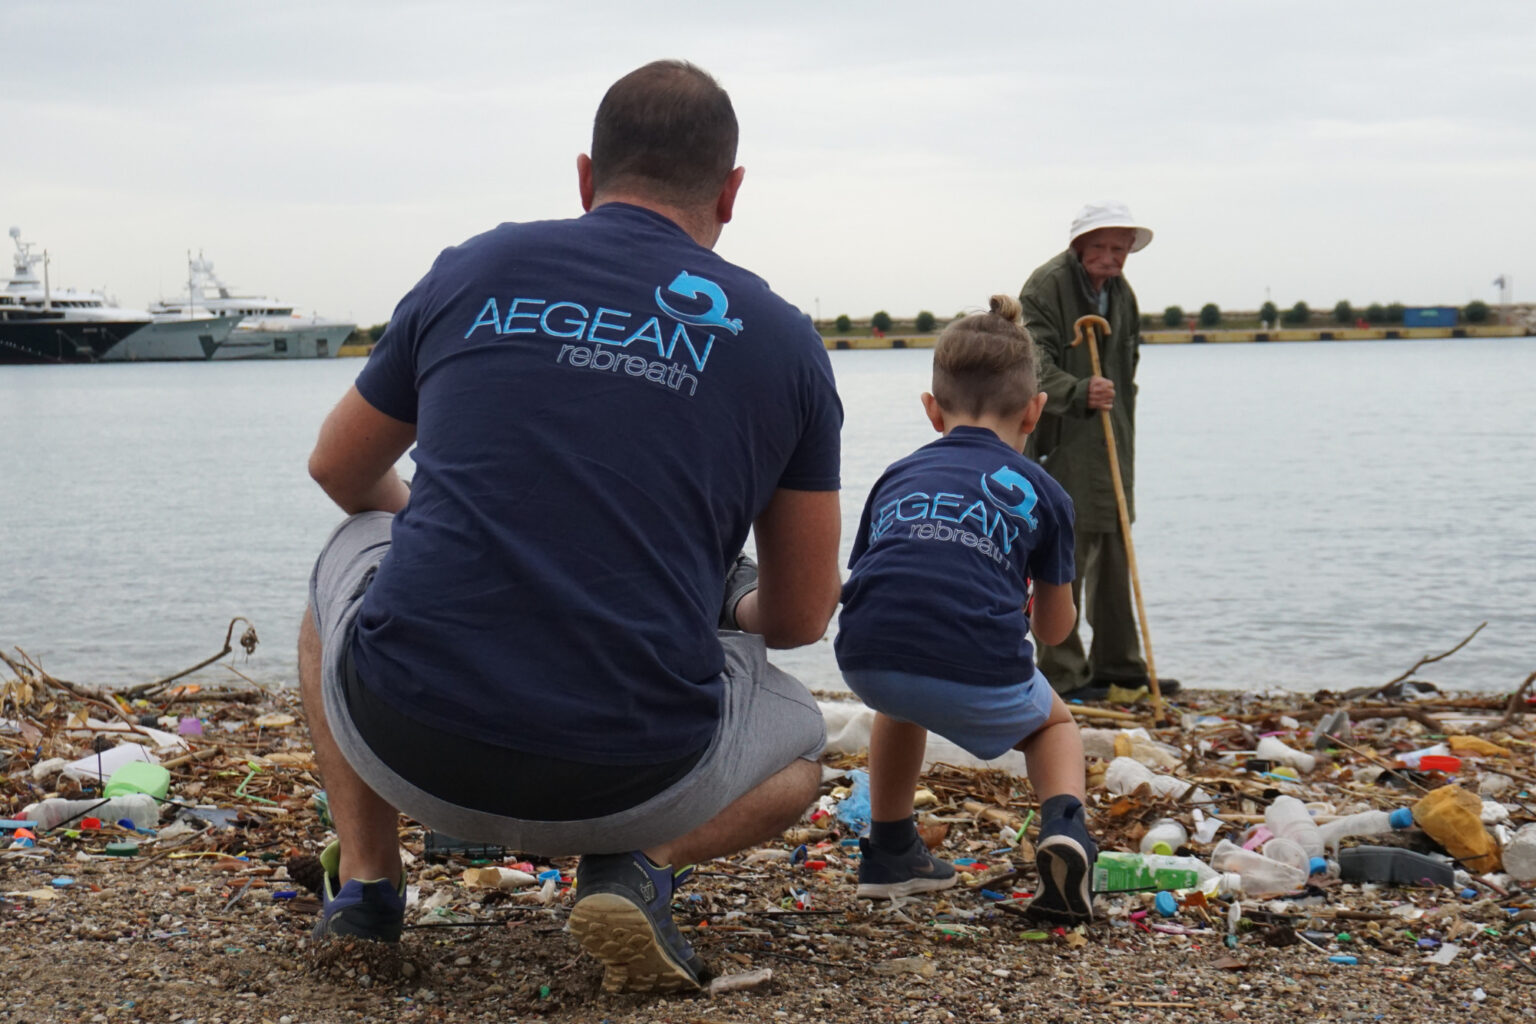 Coastal Cleaning in Peace & Friendship Stadium | Aegean Rebreath